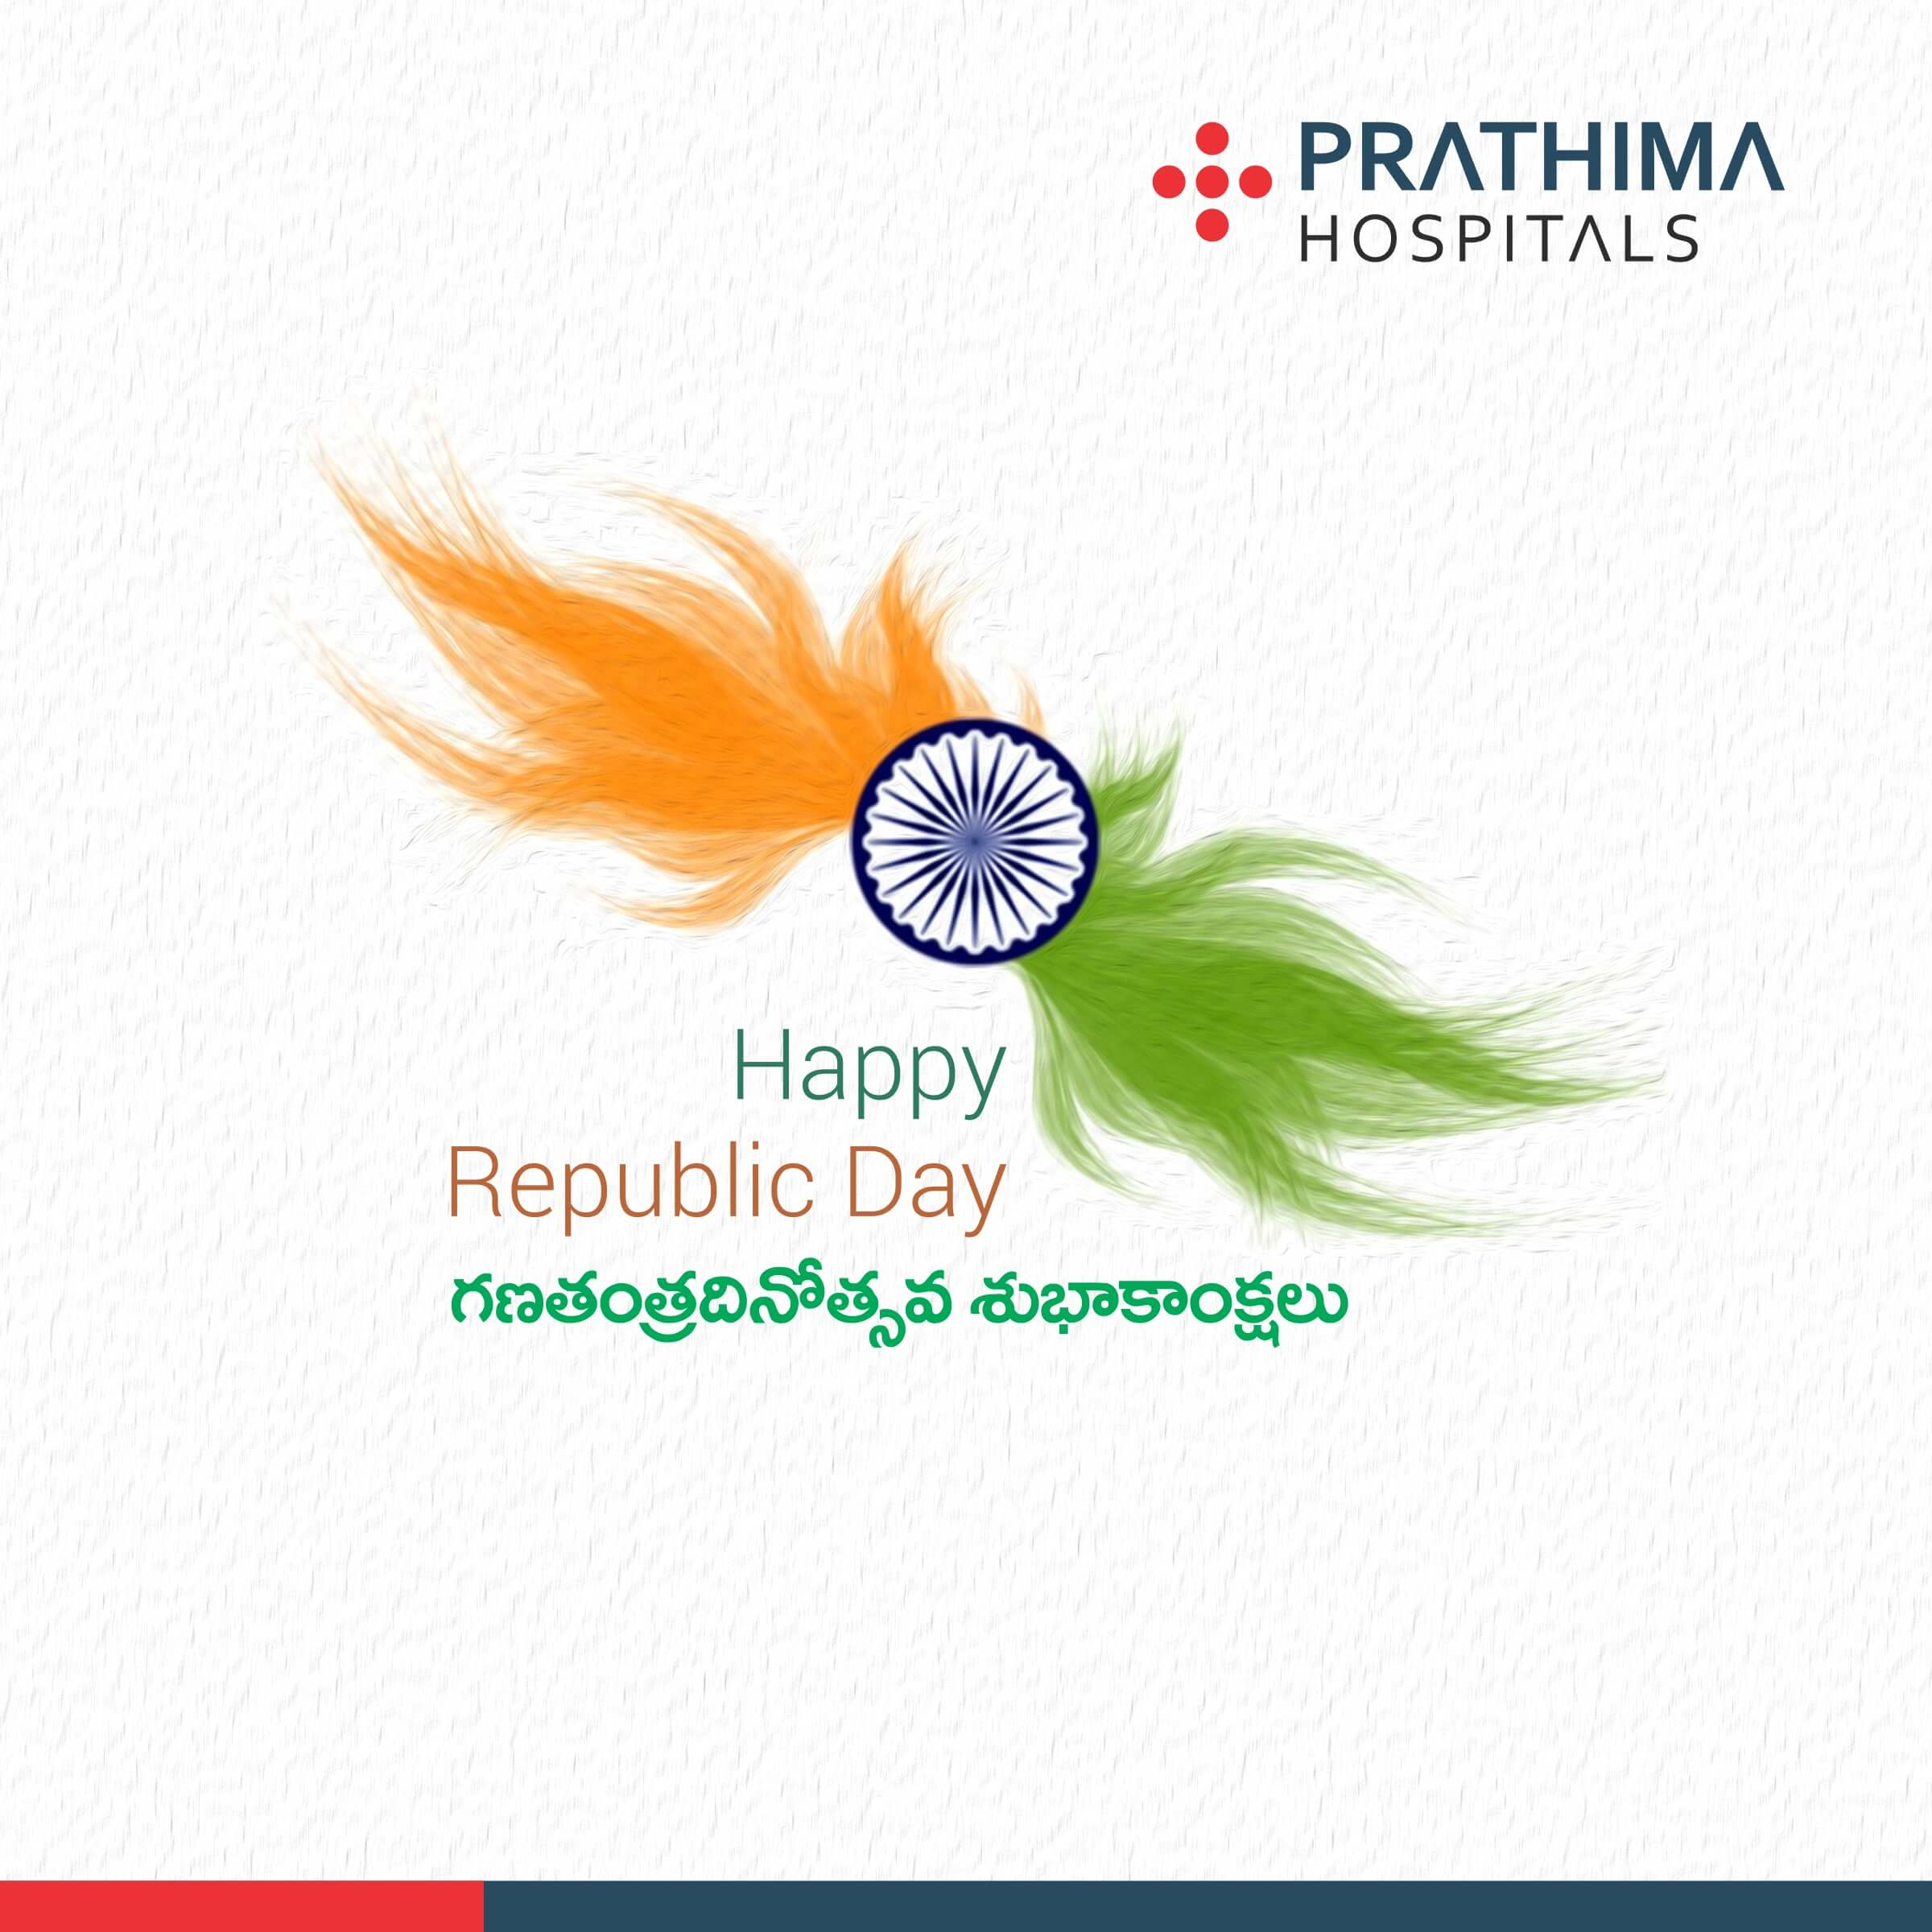 Prathima Hospitals Republic Day Greetings Best Superspecialty